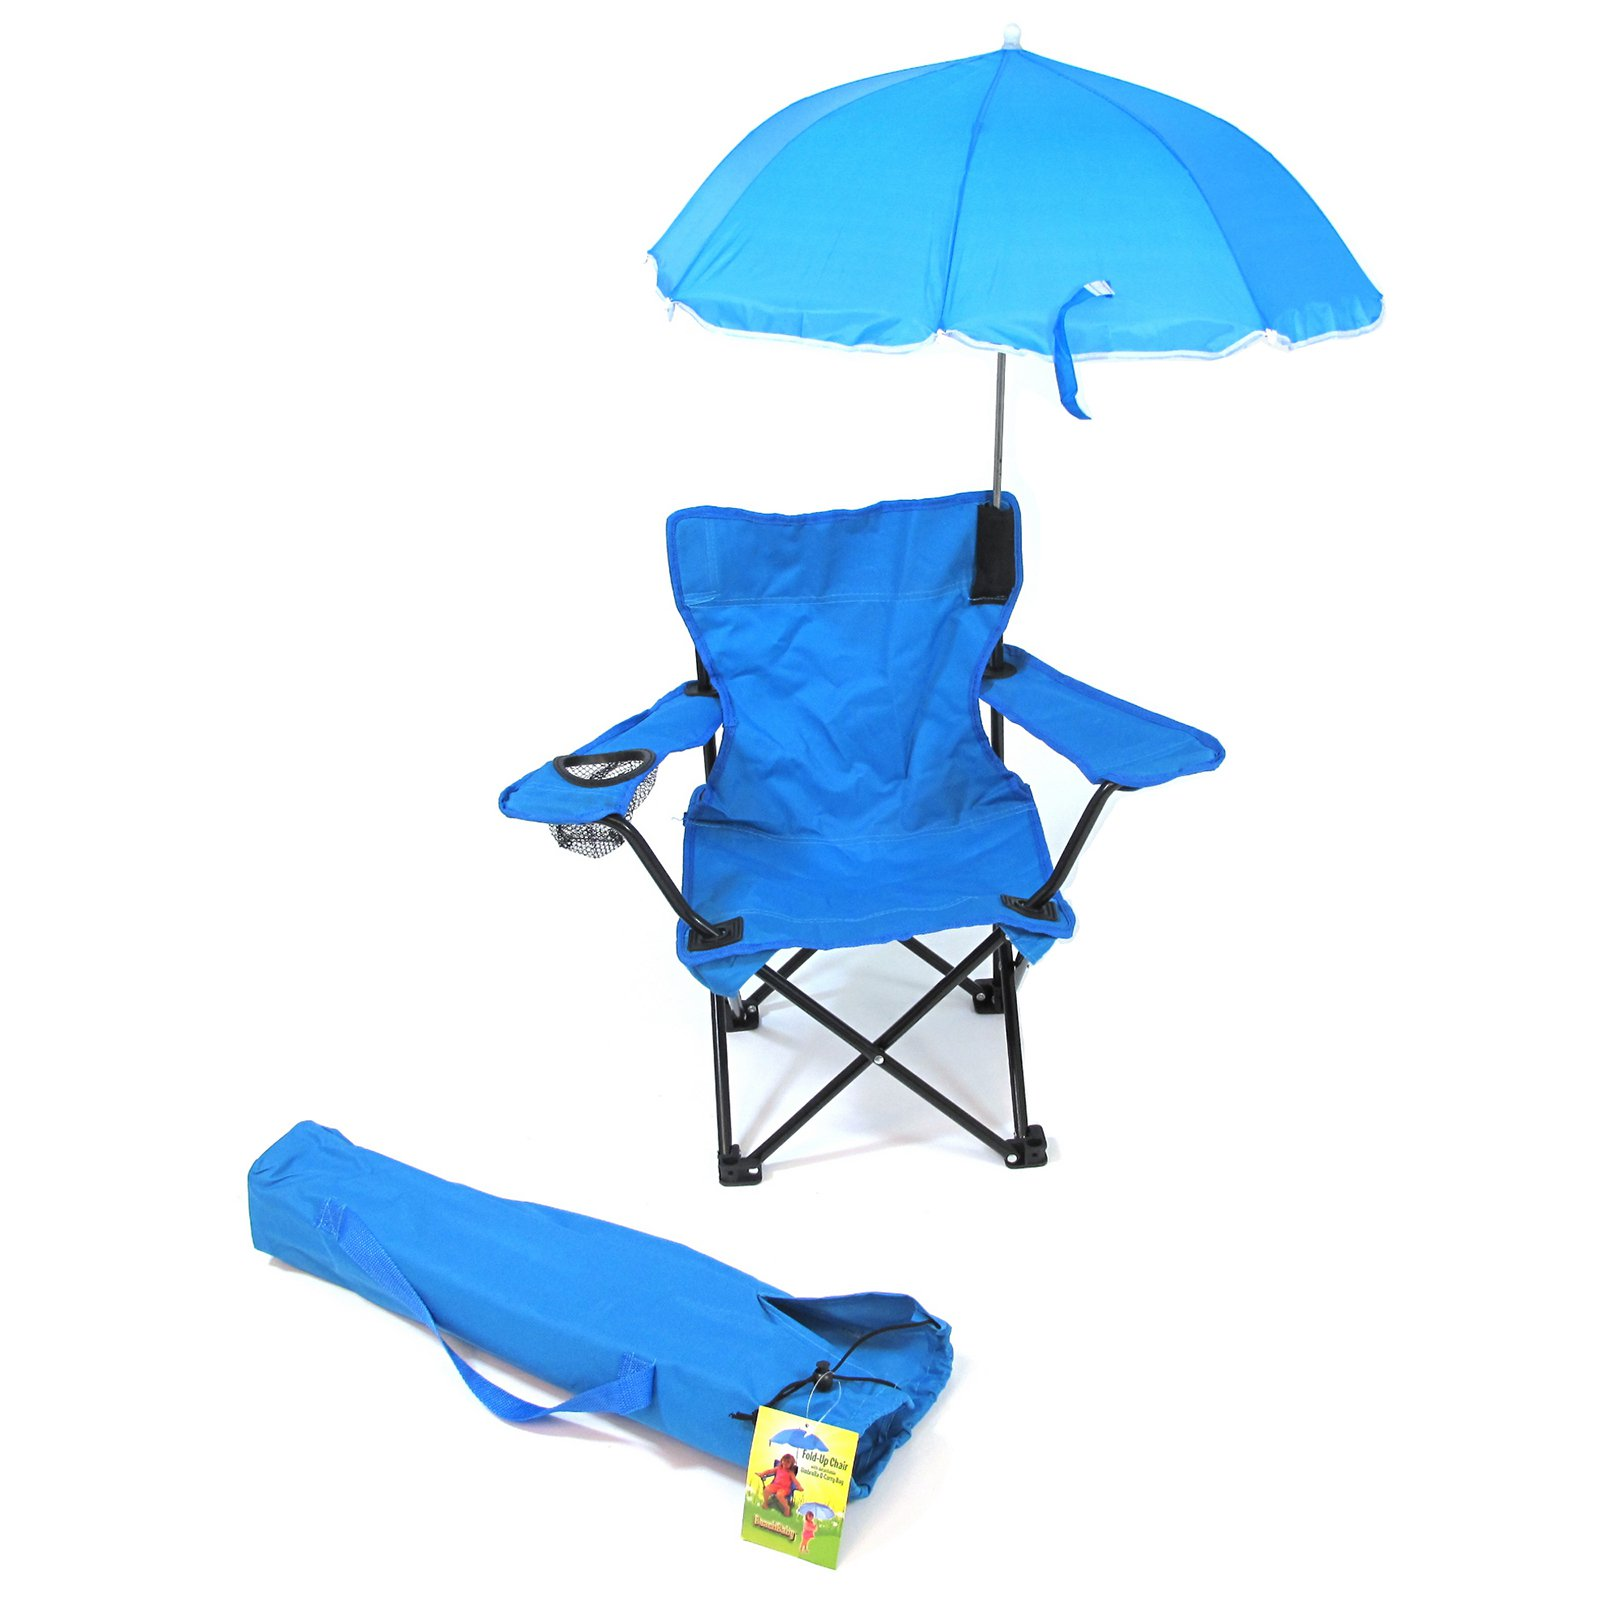 Camping chairs with umbrella - Camping Chairs With Umbrella 2